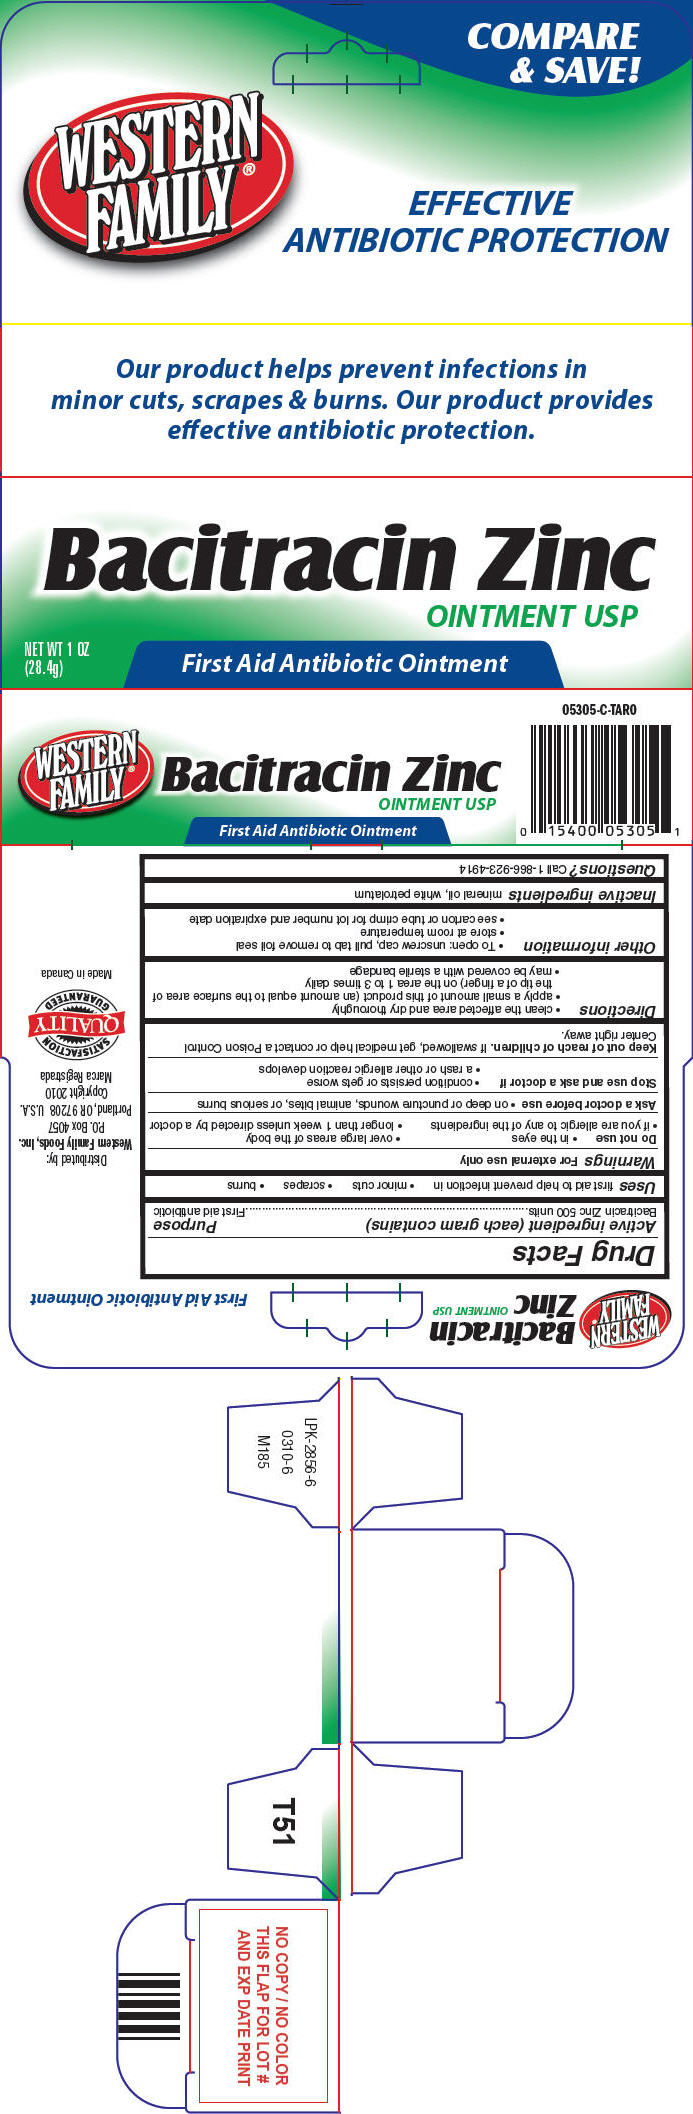 Western Family Bacitracin Zinc (Bacitracin Zinc) Ointment [Western Family Foods Inc]